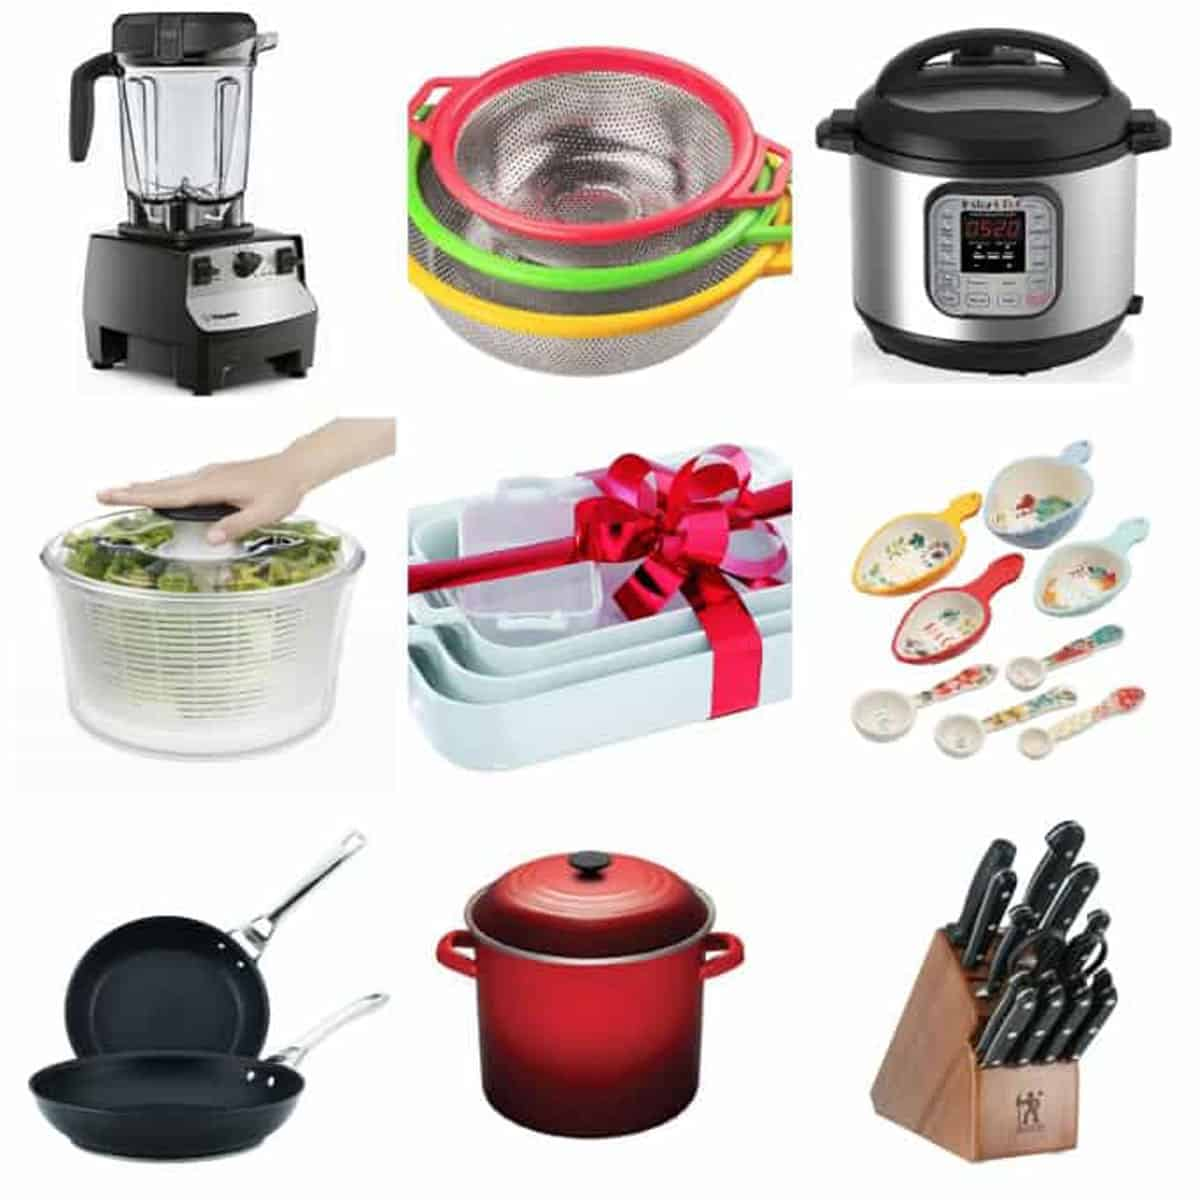 9 photo collage of a variety of kitchen essentials.